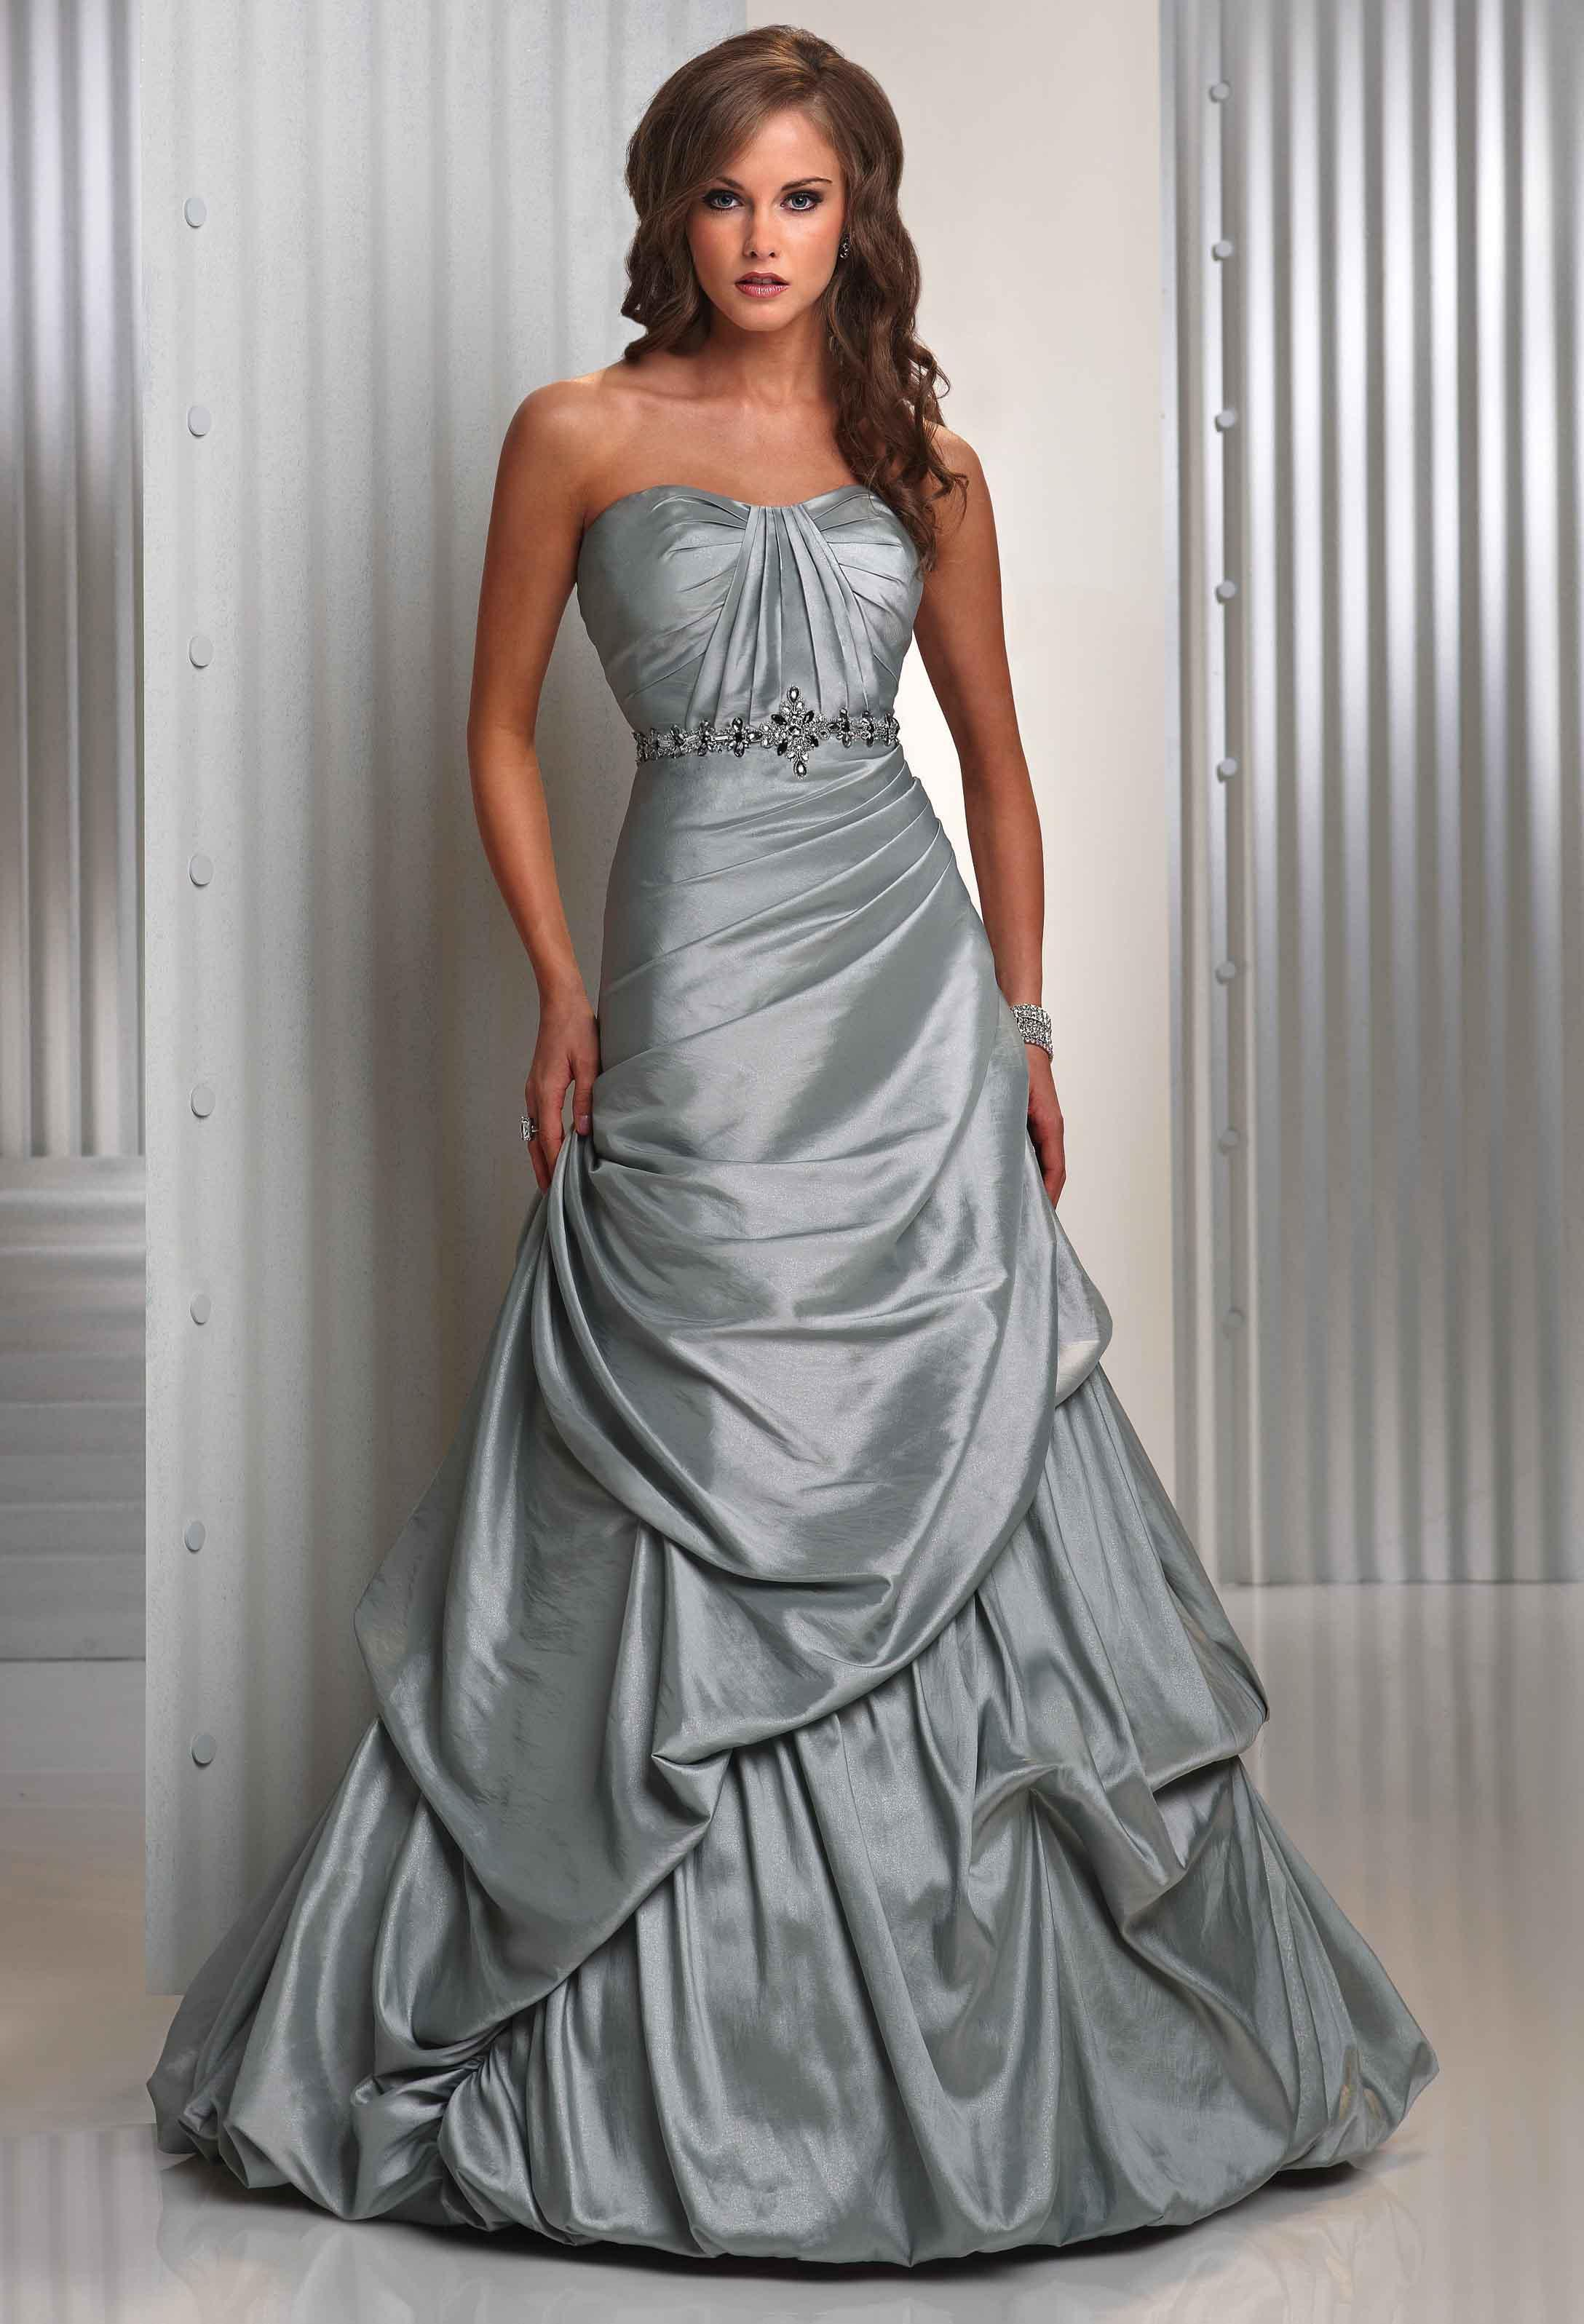 Sposidea foto video racconti for Silver and red wedding dresses